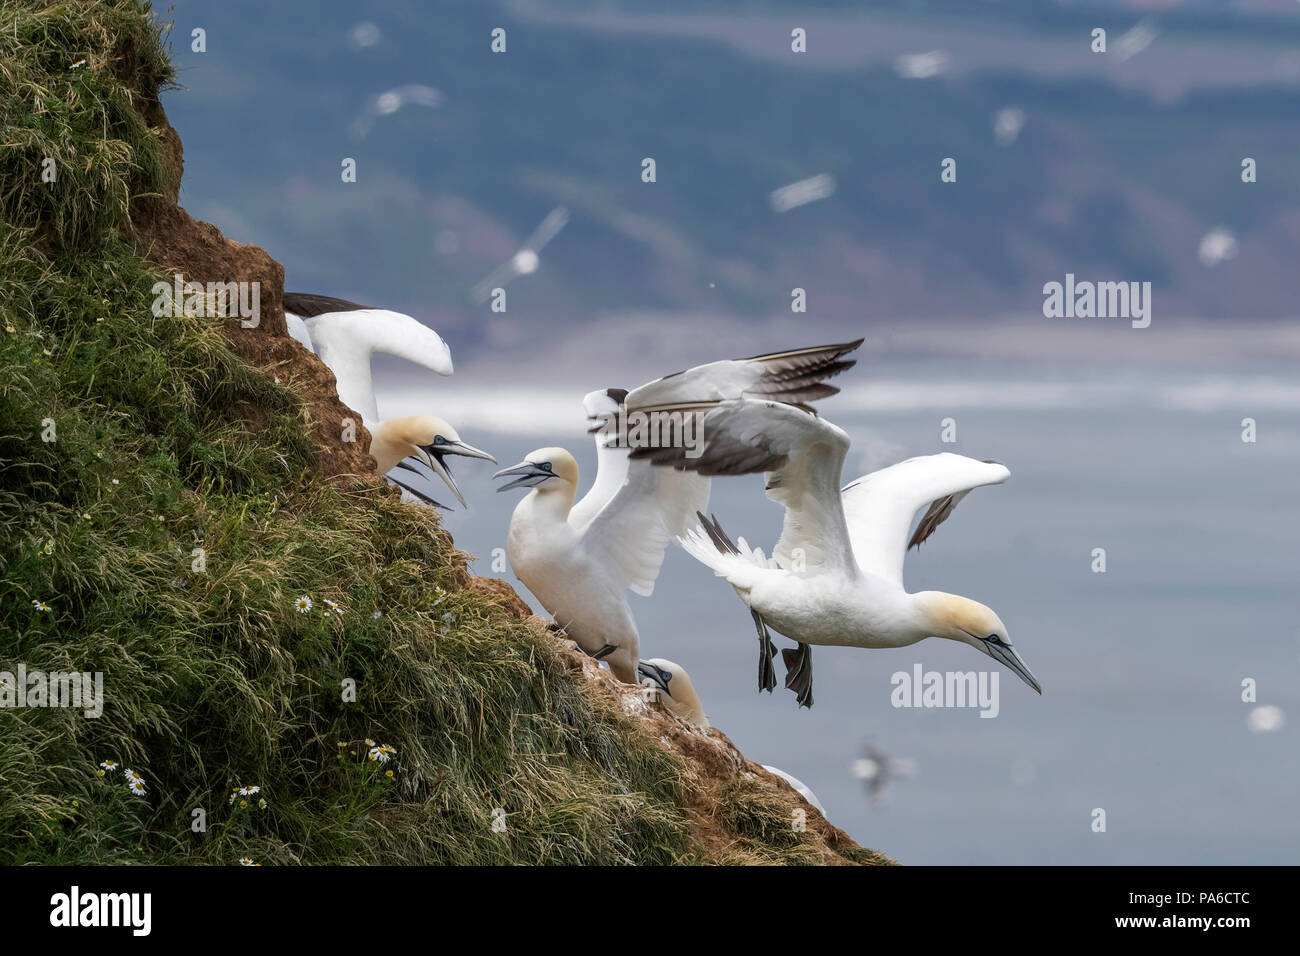 Gannets at their cliff top nest site - Stock Image